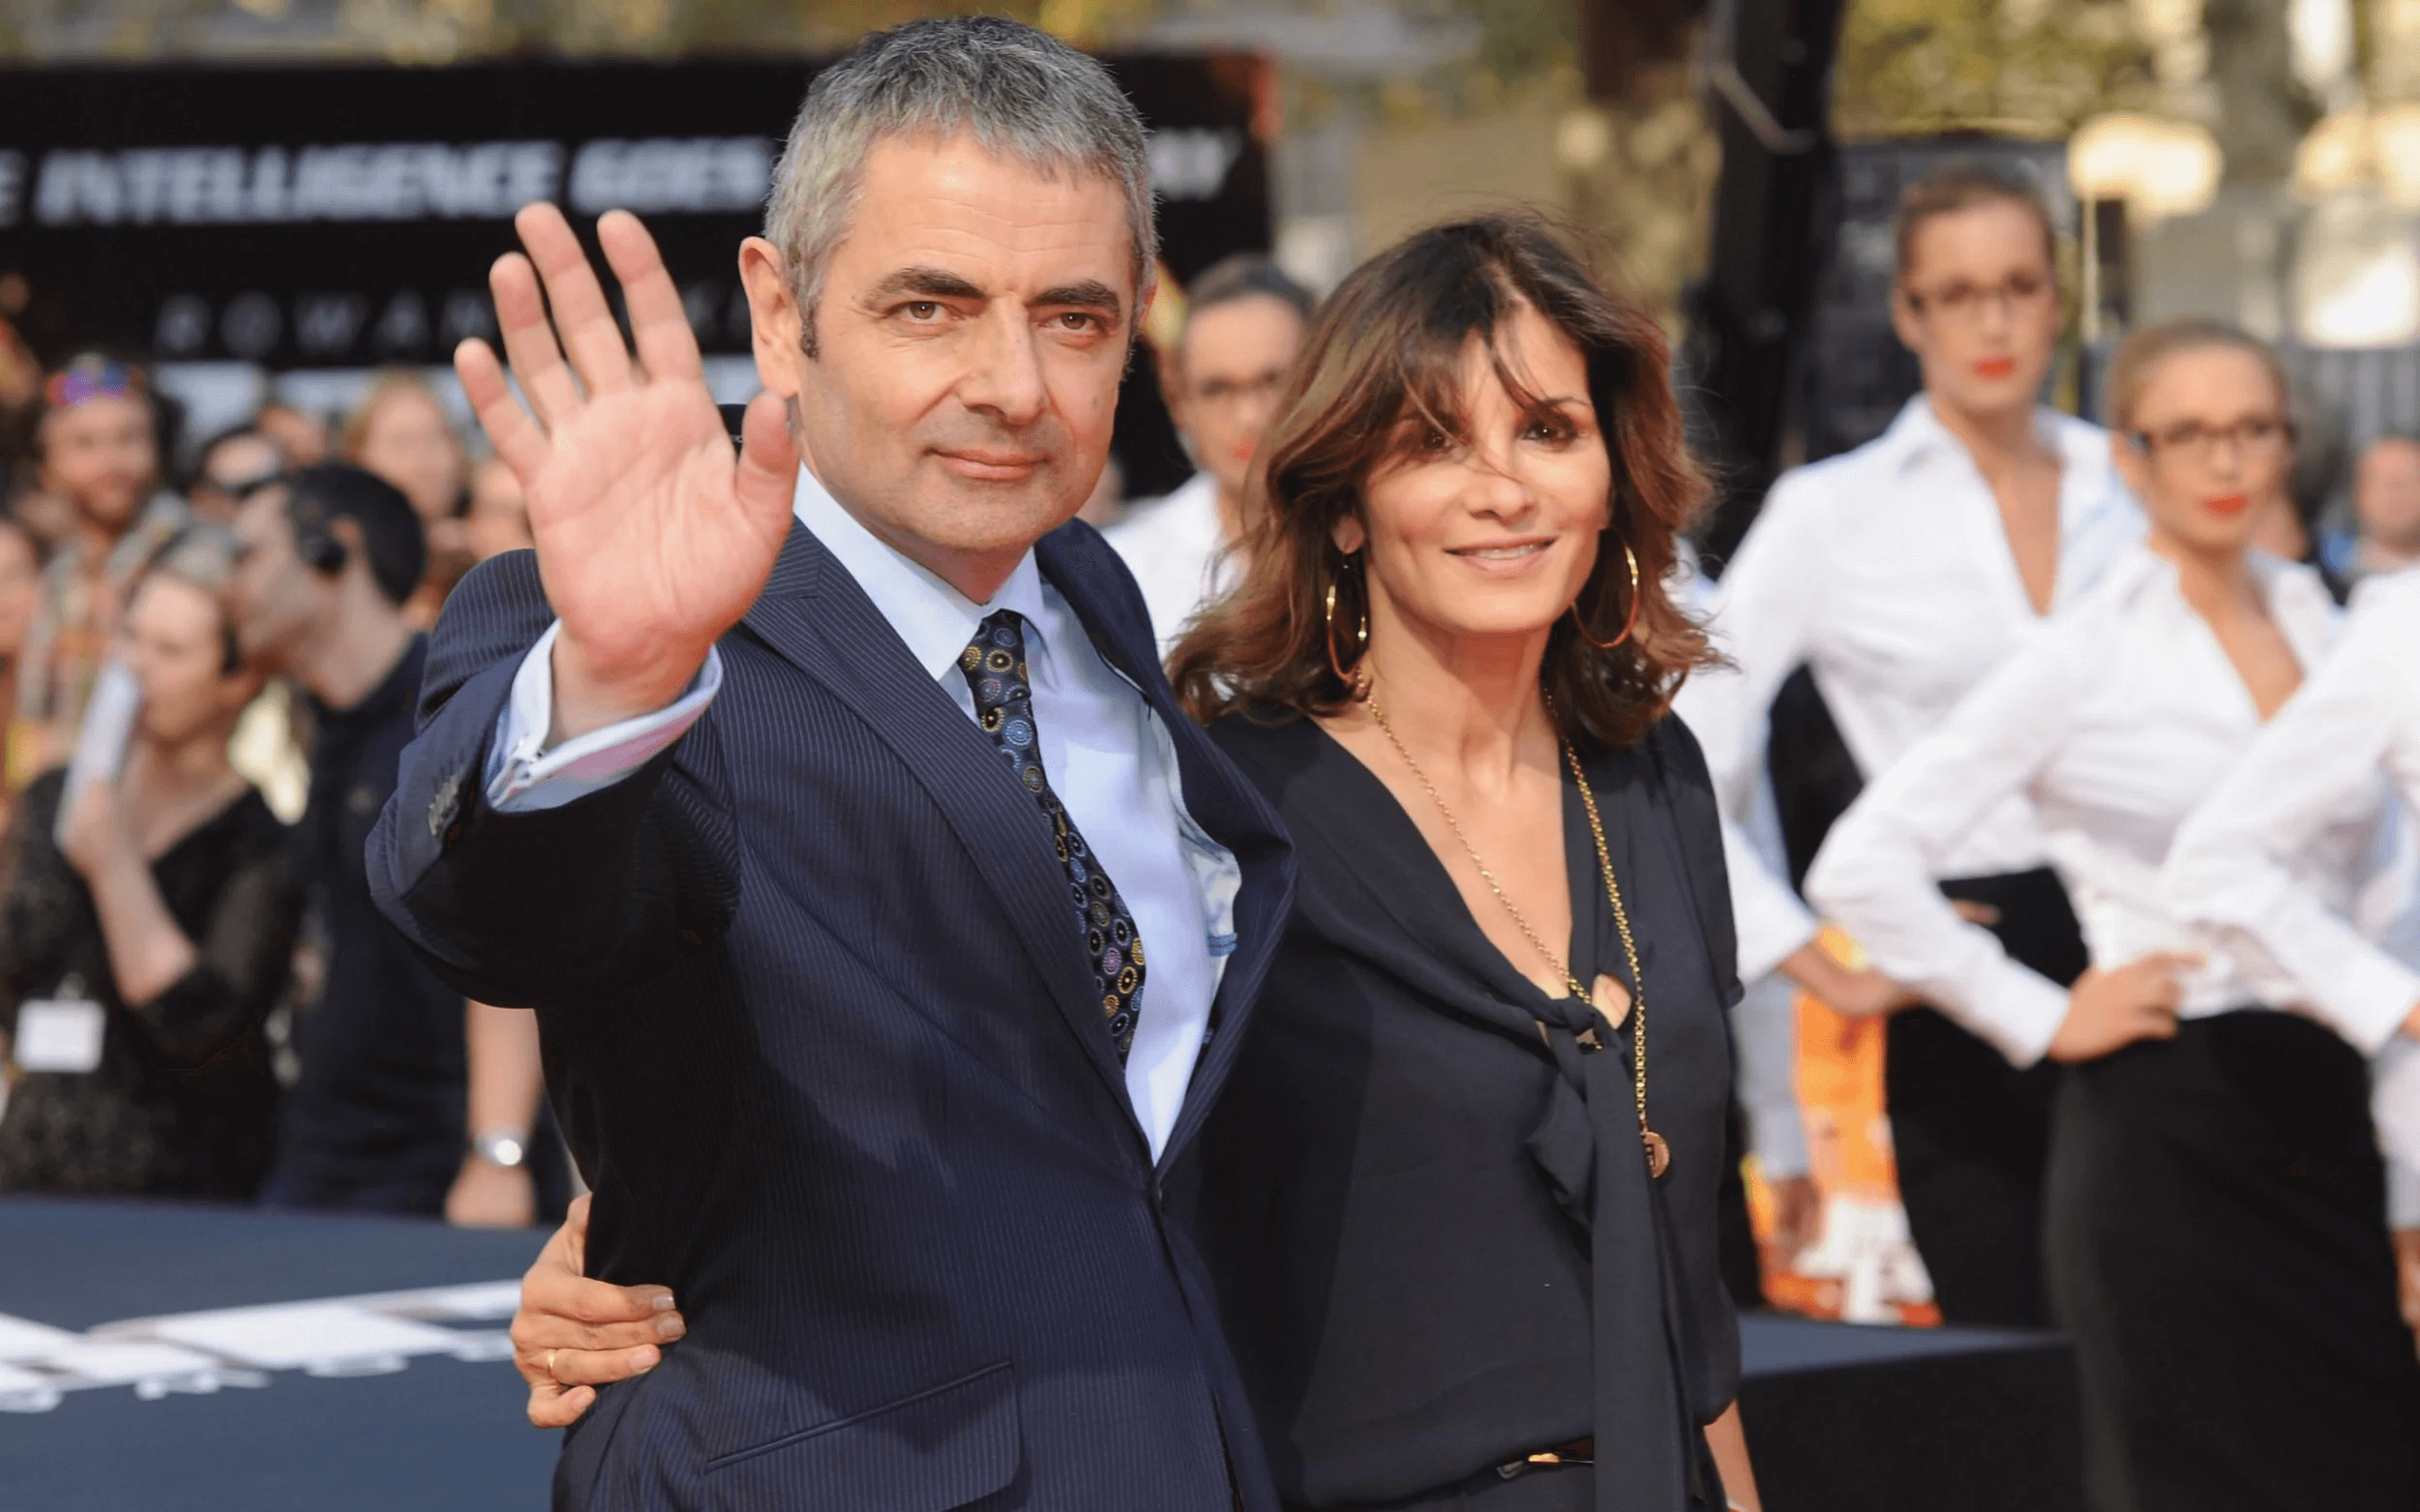 Rowan Atkinson with his ex-wife Sunetra Sastry